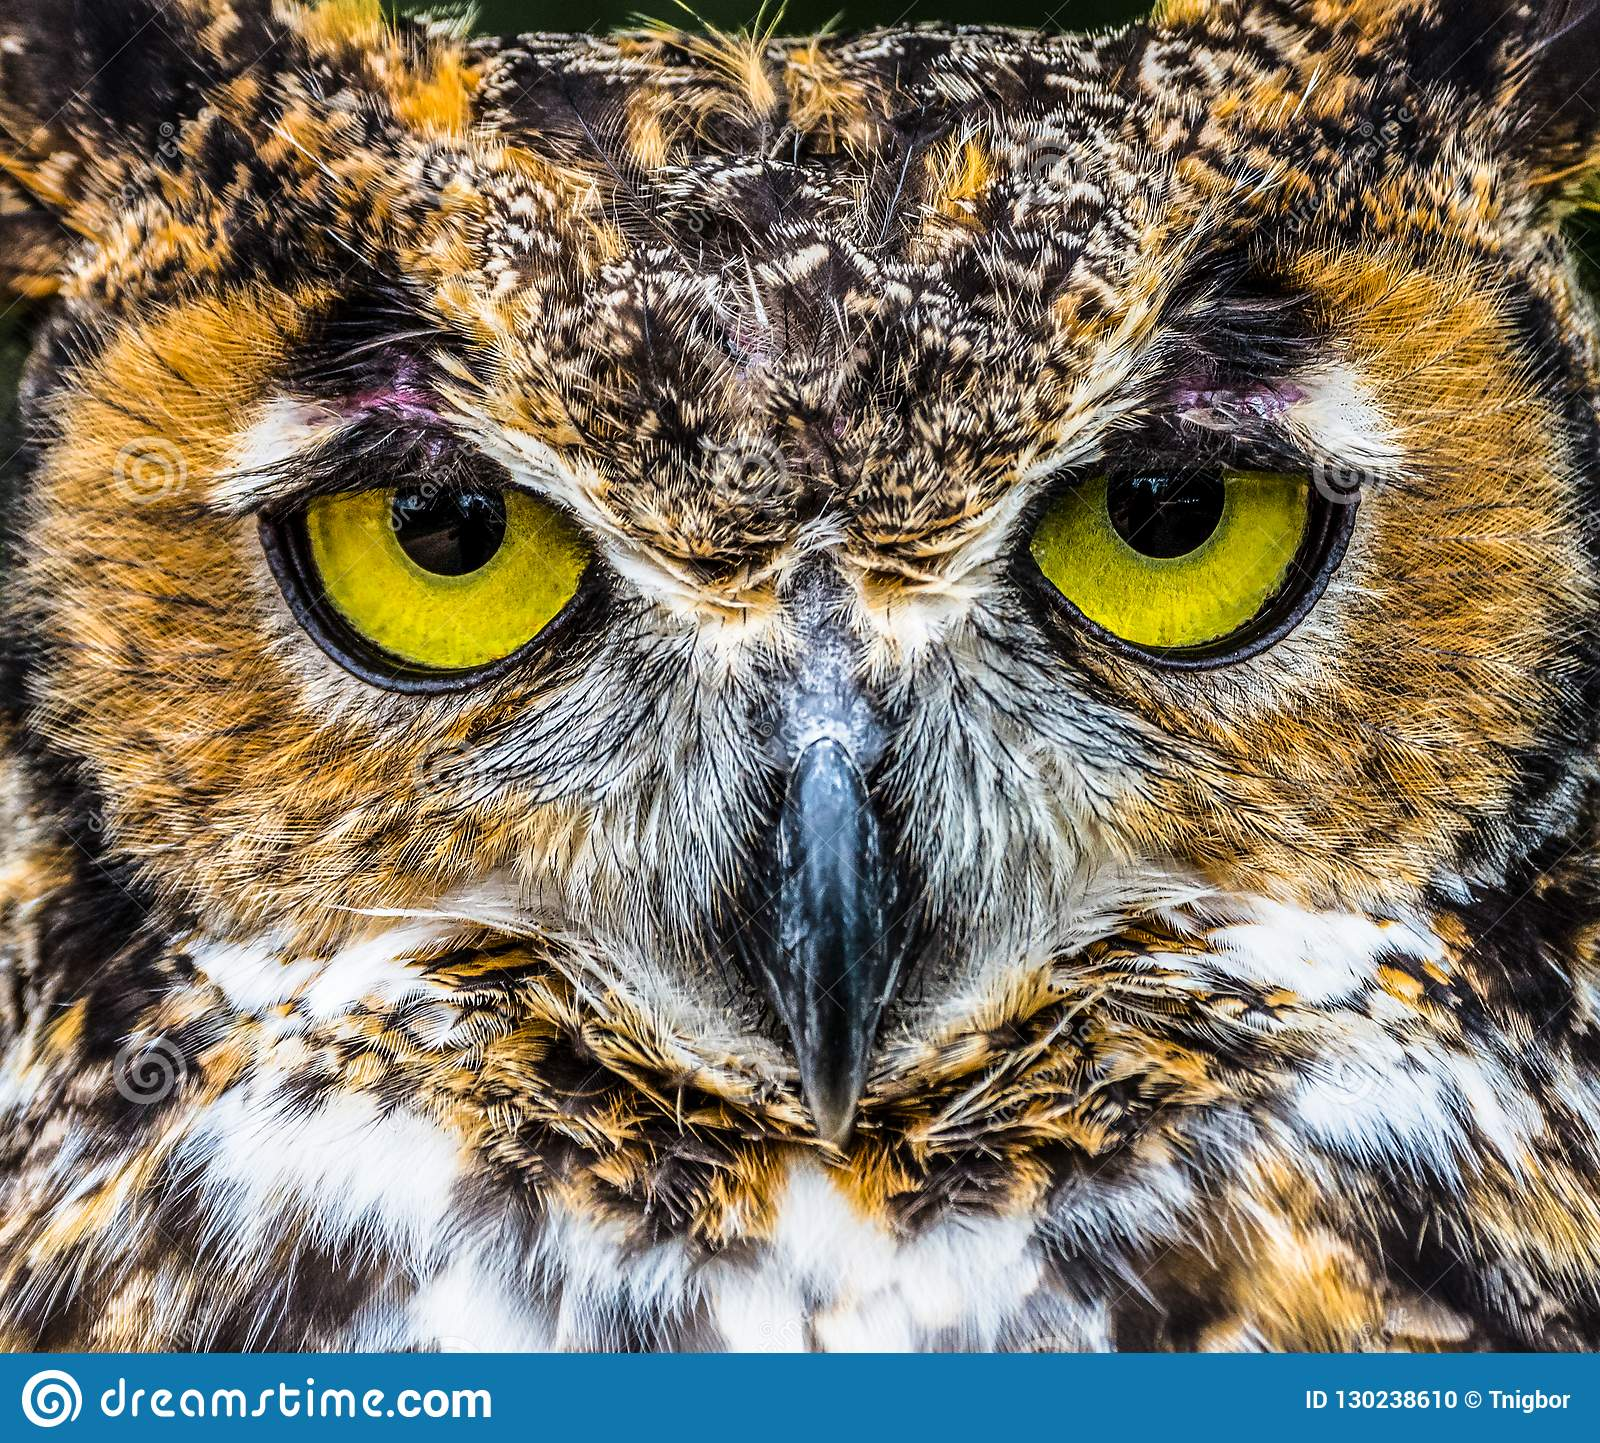 Great Horned Owl close up bright yellow eyes